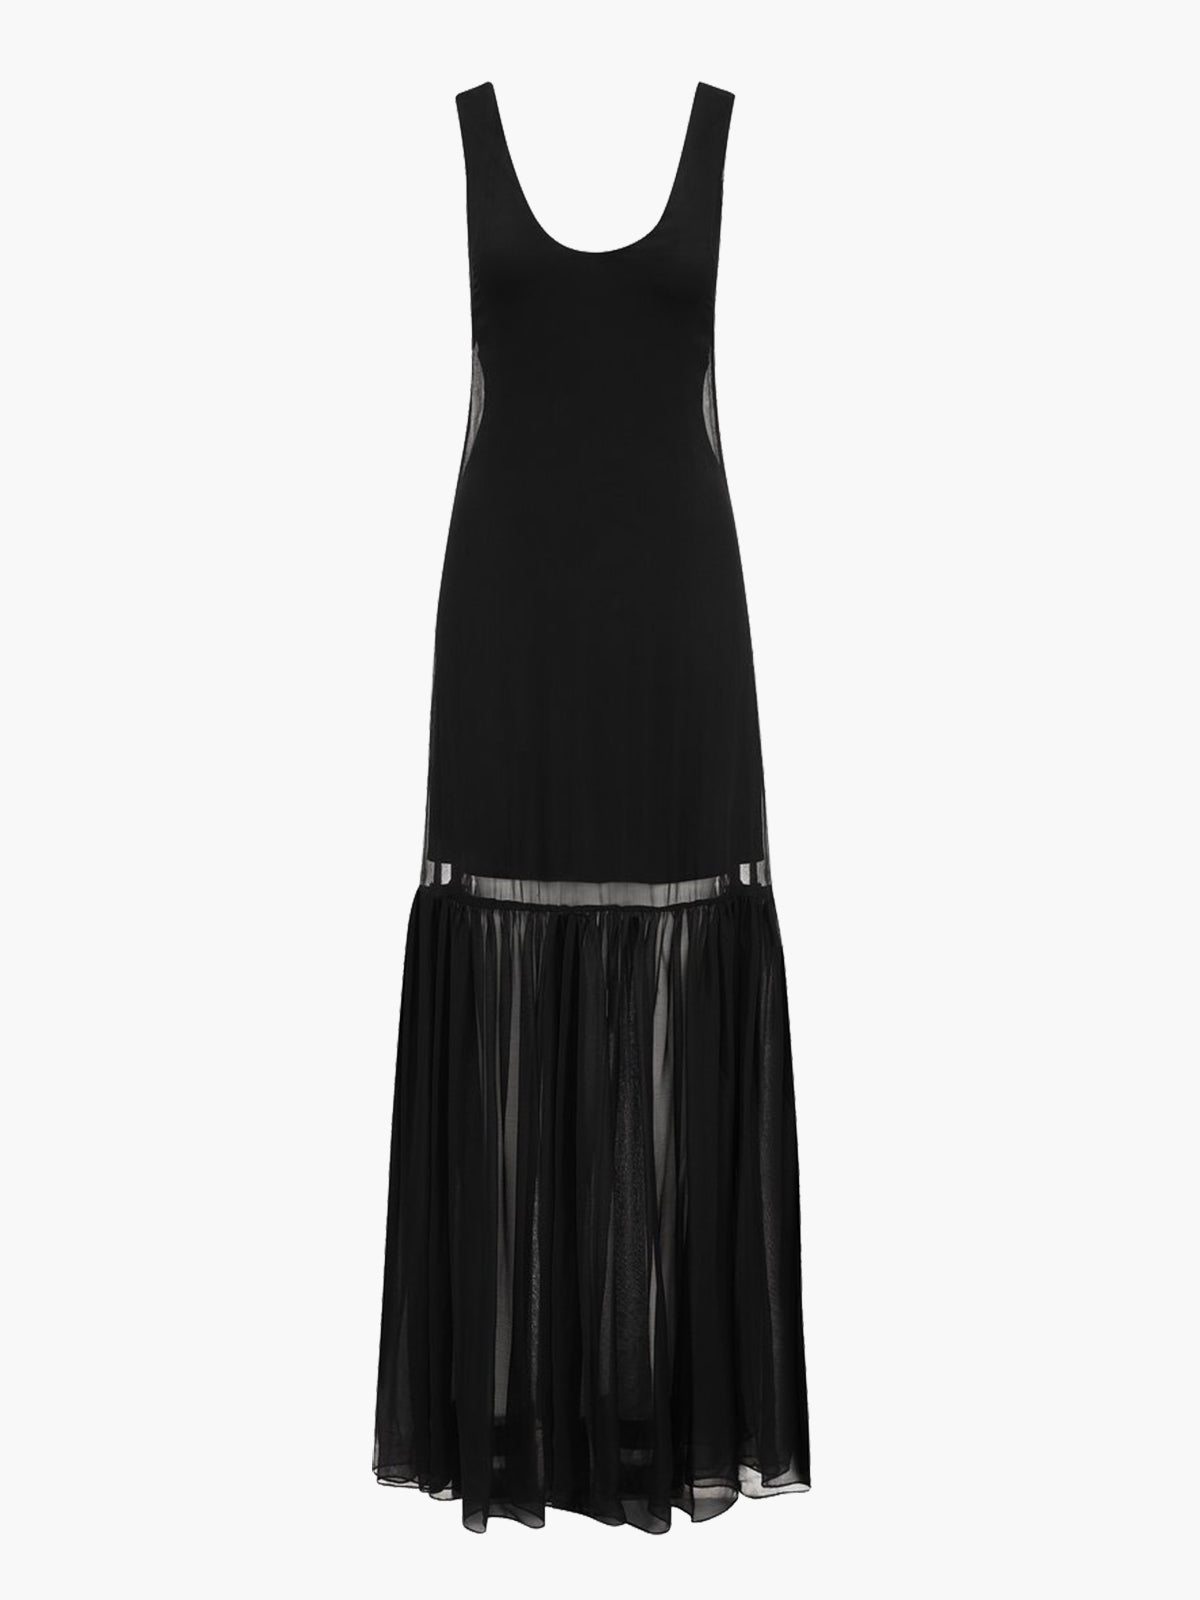 Christina Dress | Black Christina Dress | Black